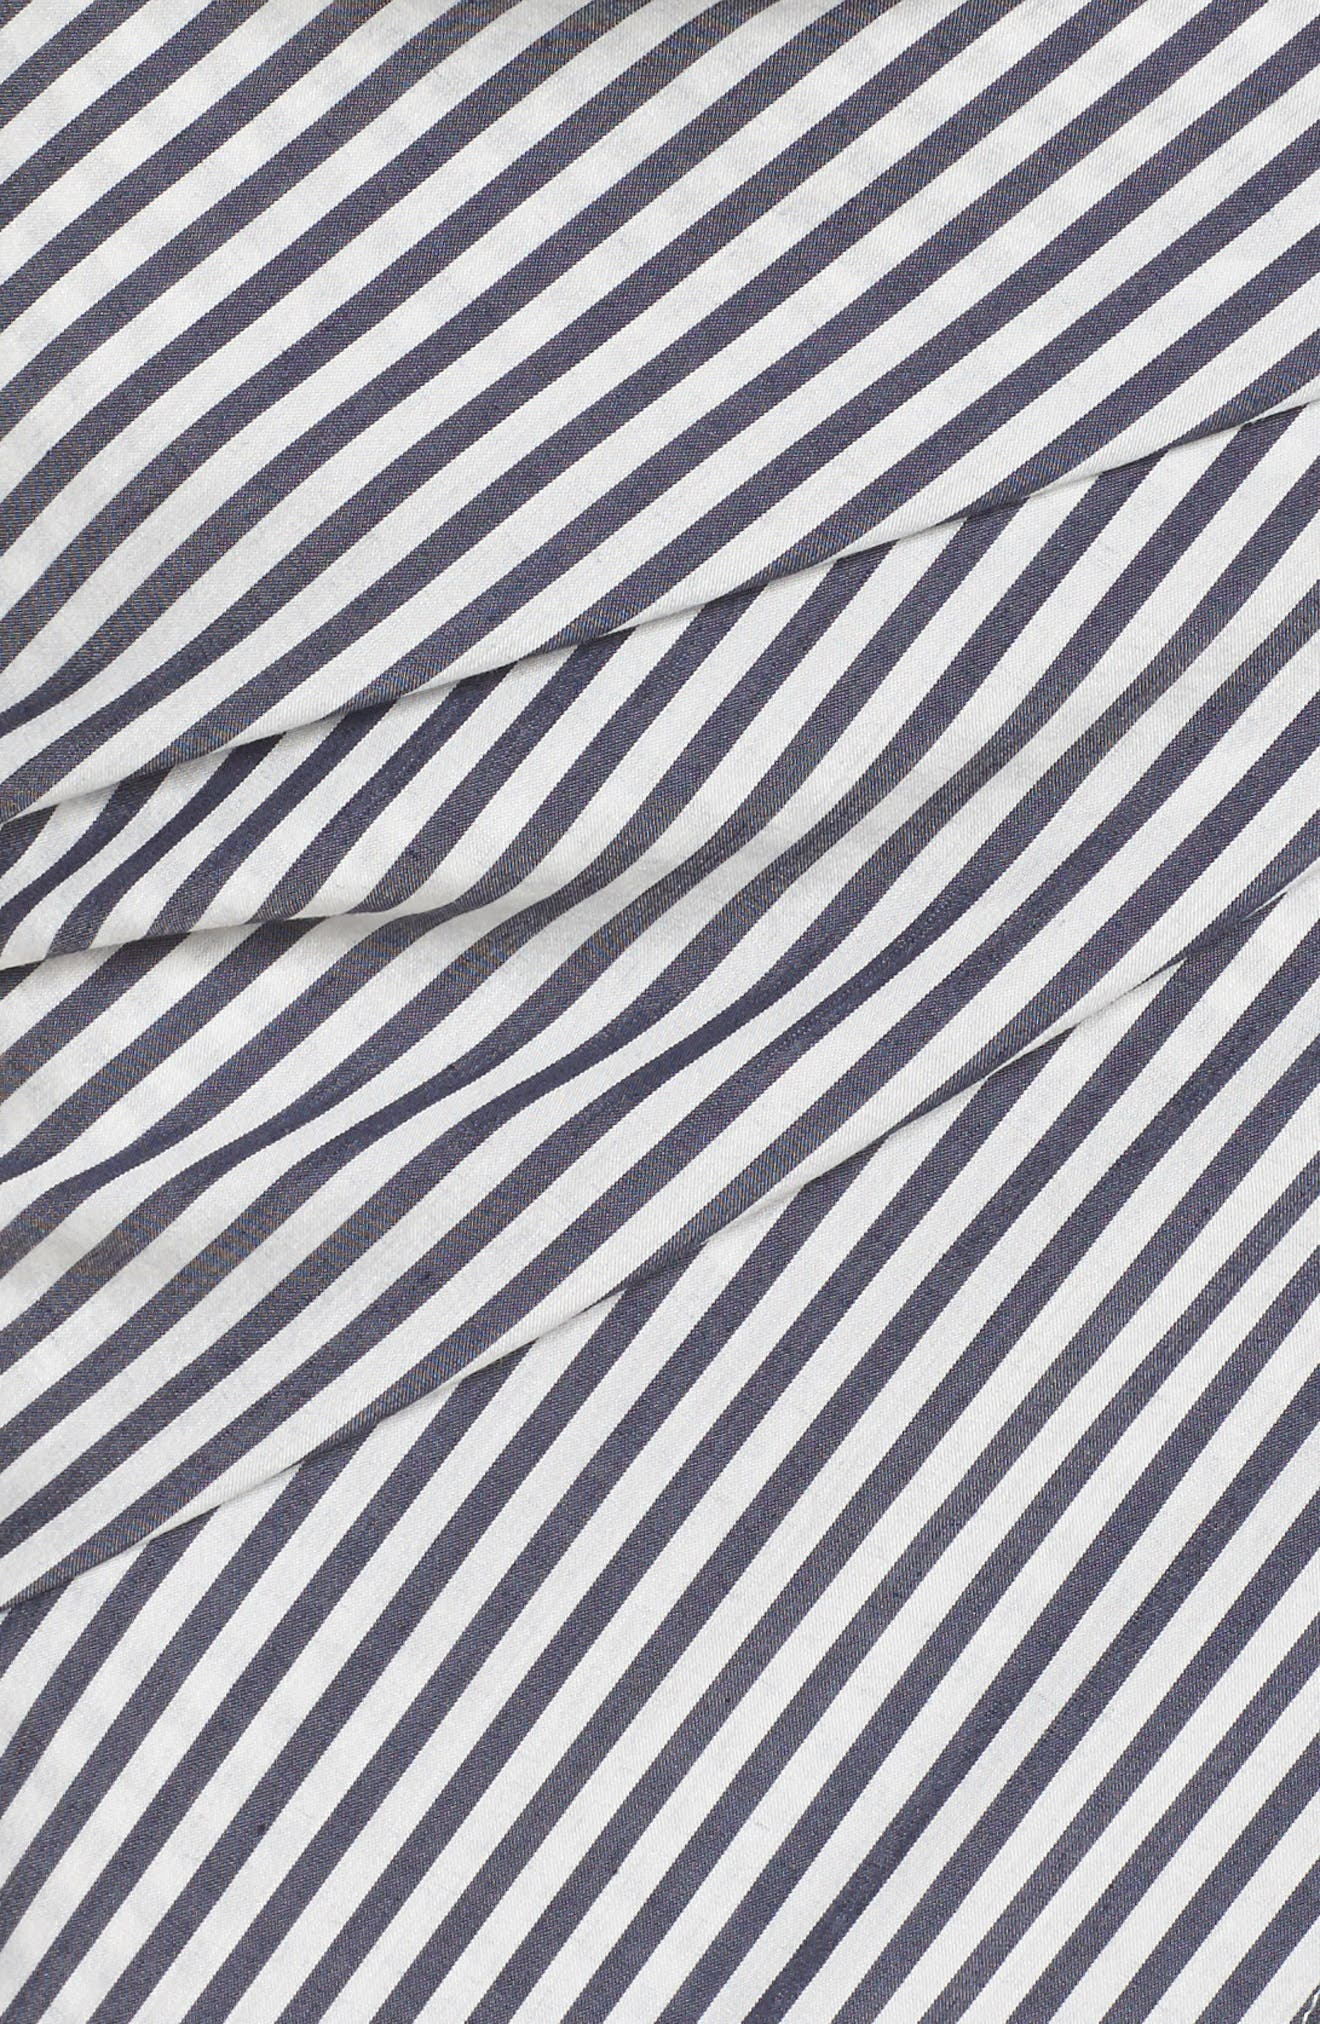 Cocktails Please Stripe Two-Piece Dress,                             Alternate thumbnail 5, color,                             Navy/ White Mini Stripe